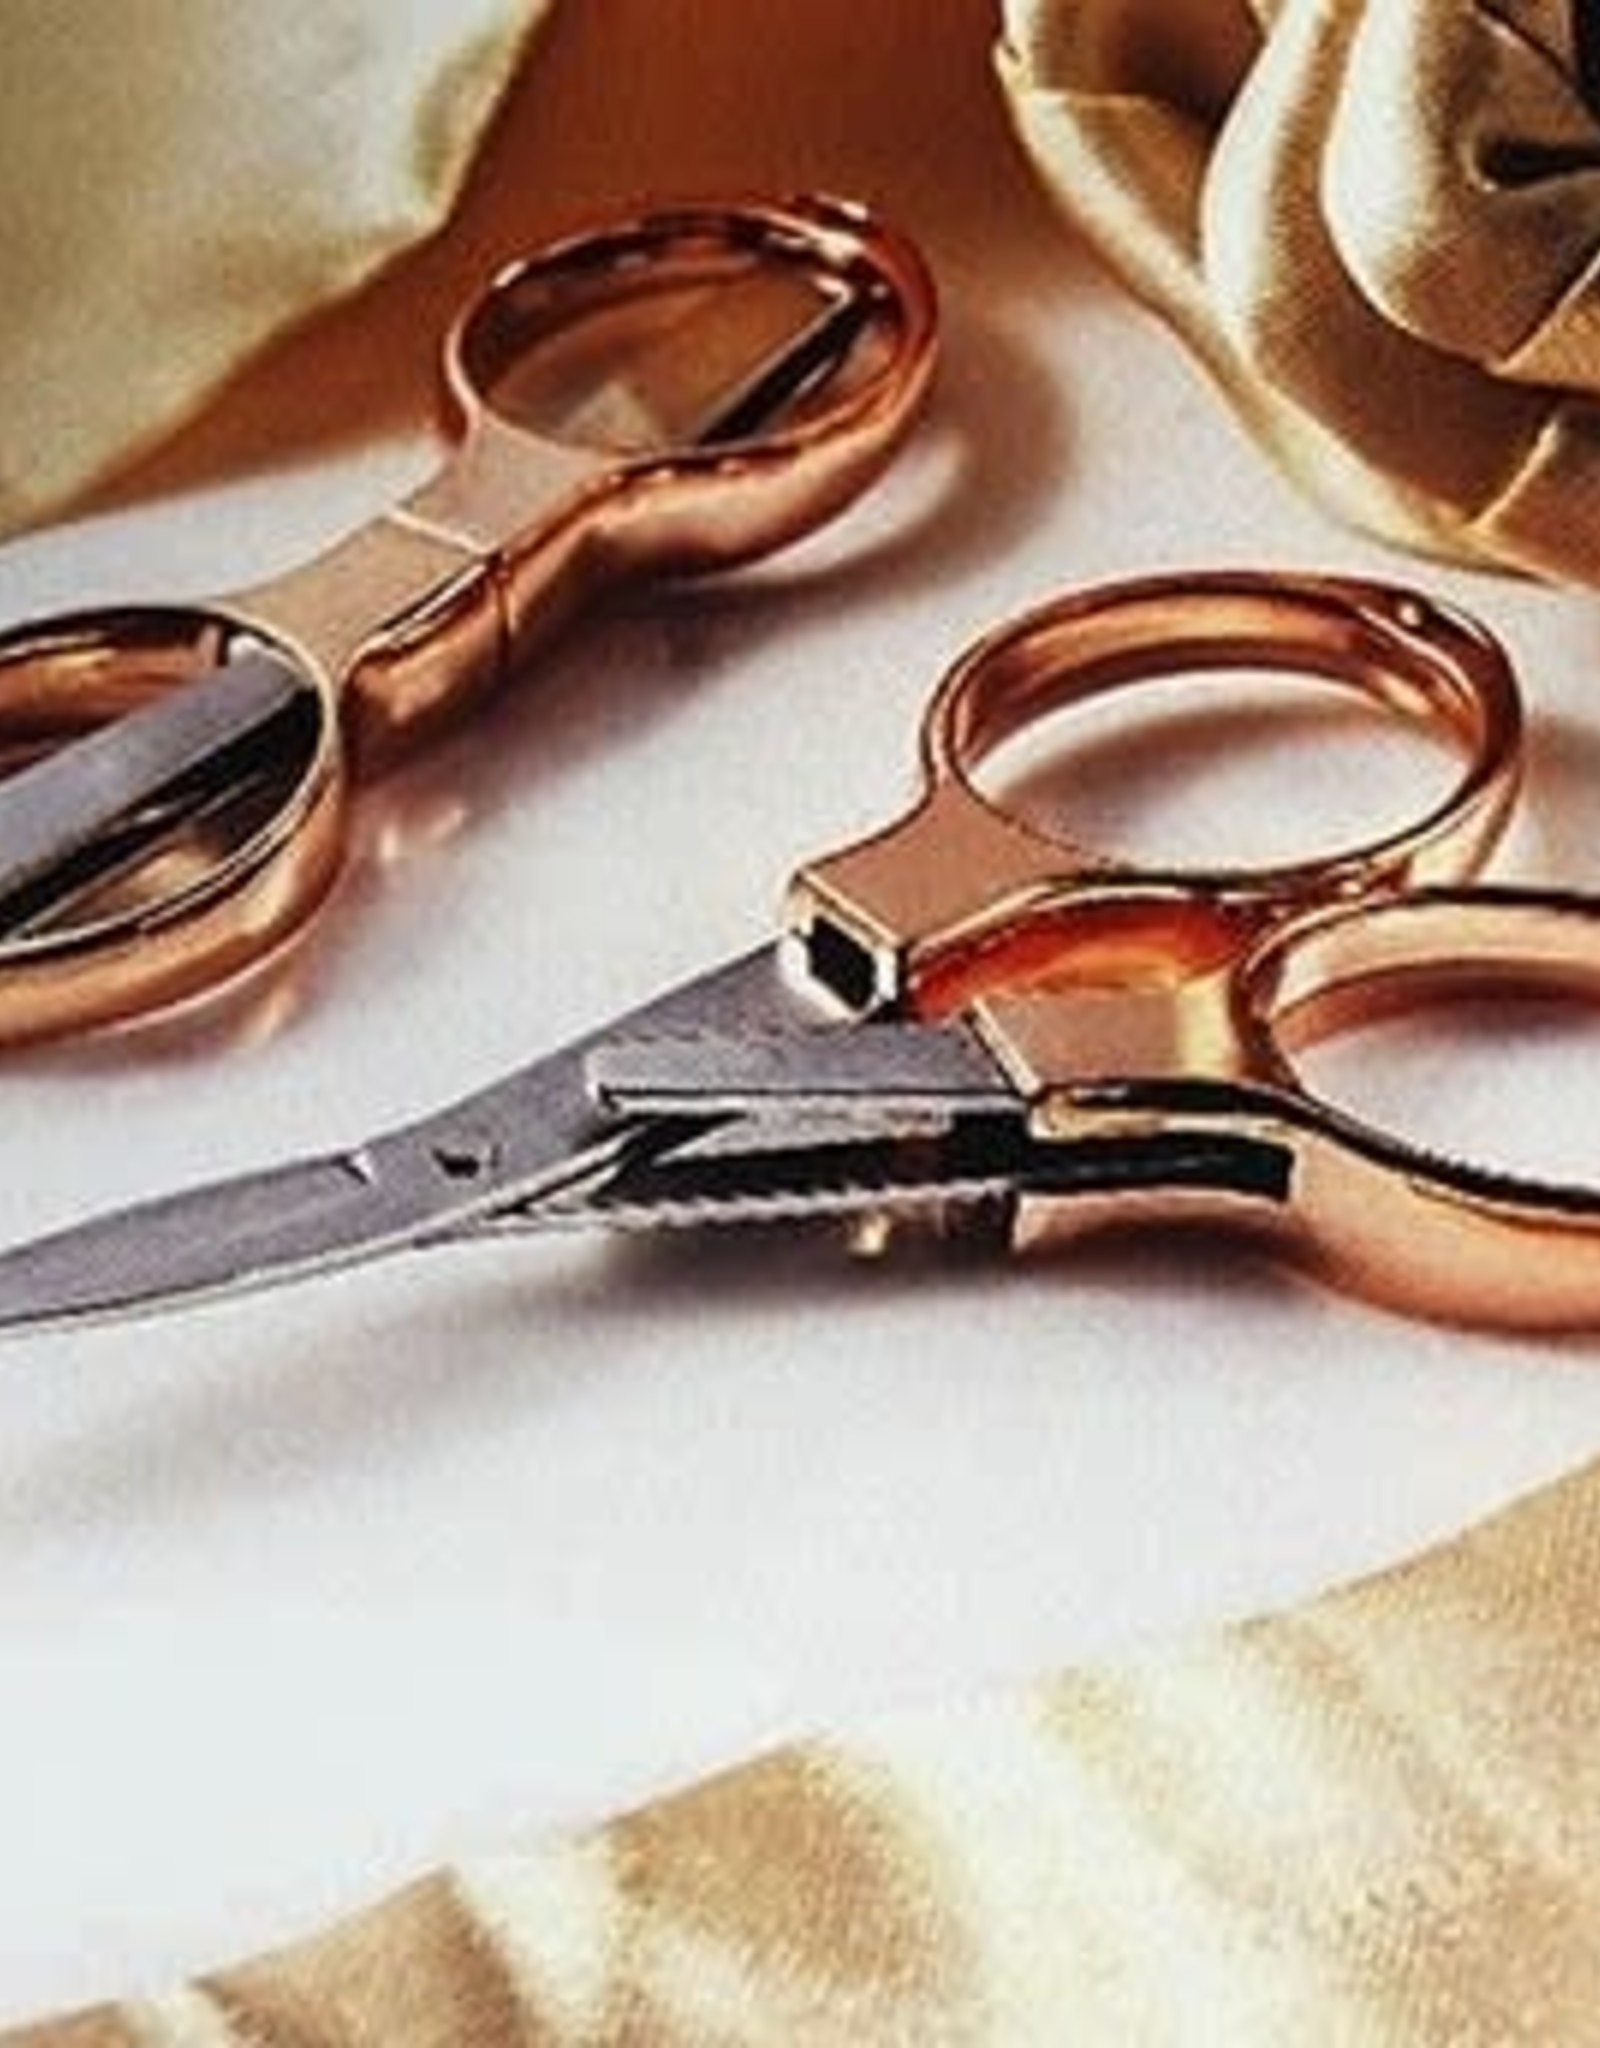 Folding Scissors - Rose Gold